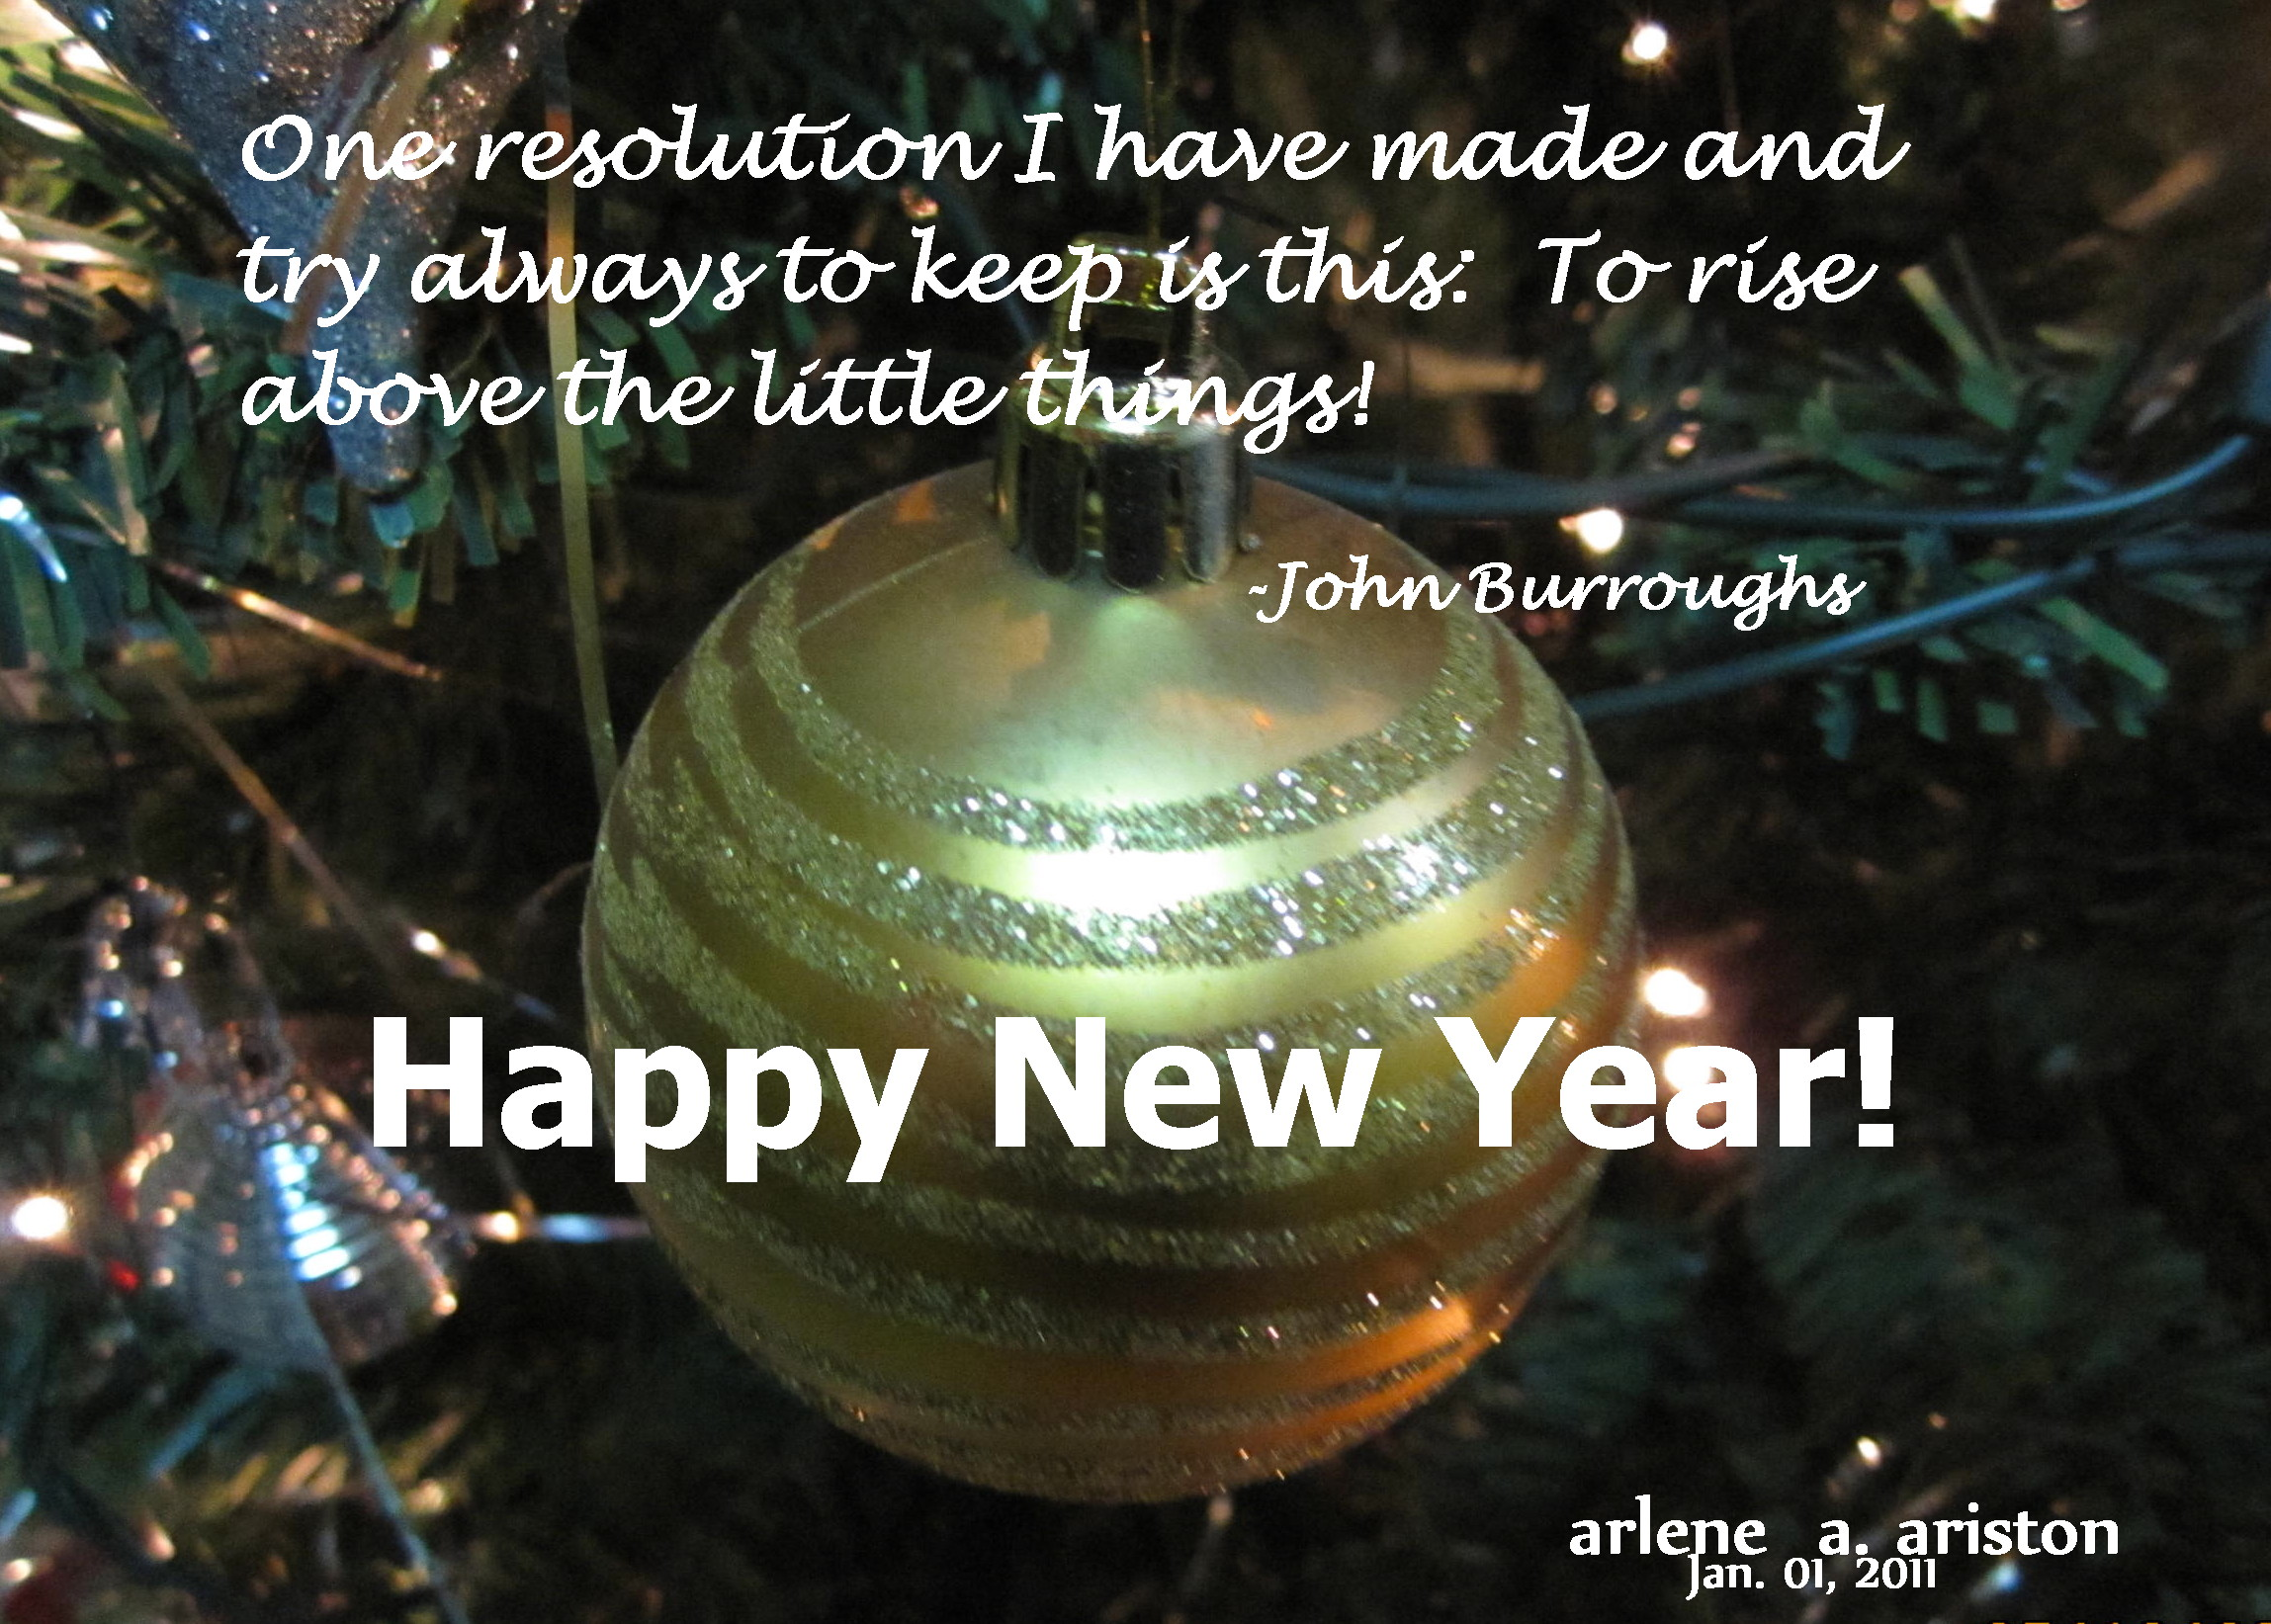 i made my new year greetings early this morning and this is what i wrote on the picture that i took last december 25